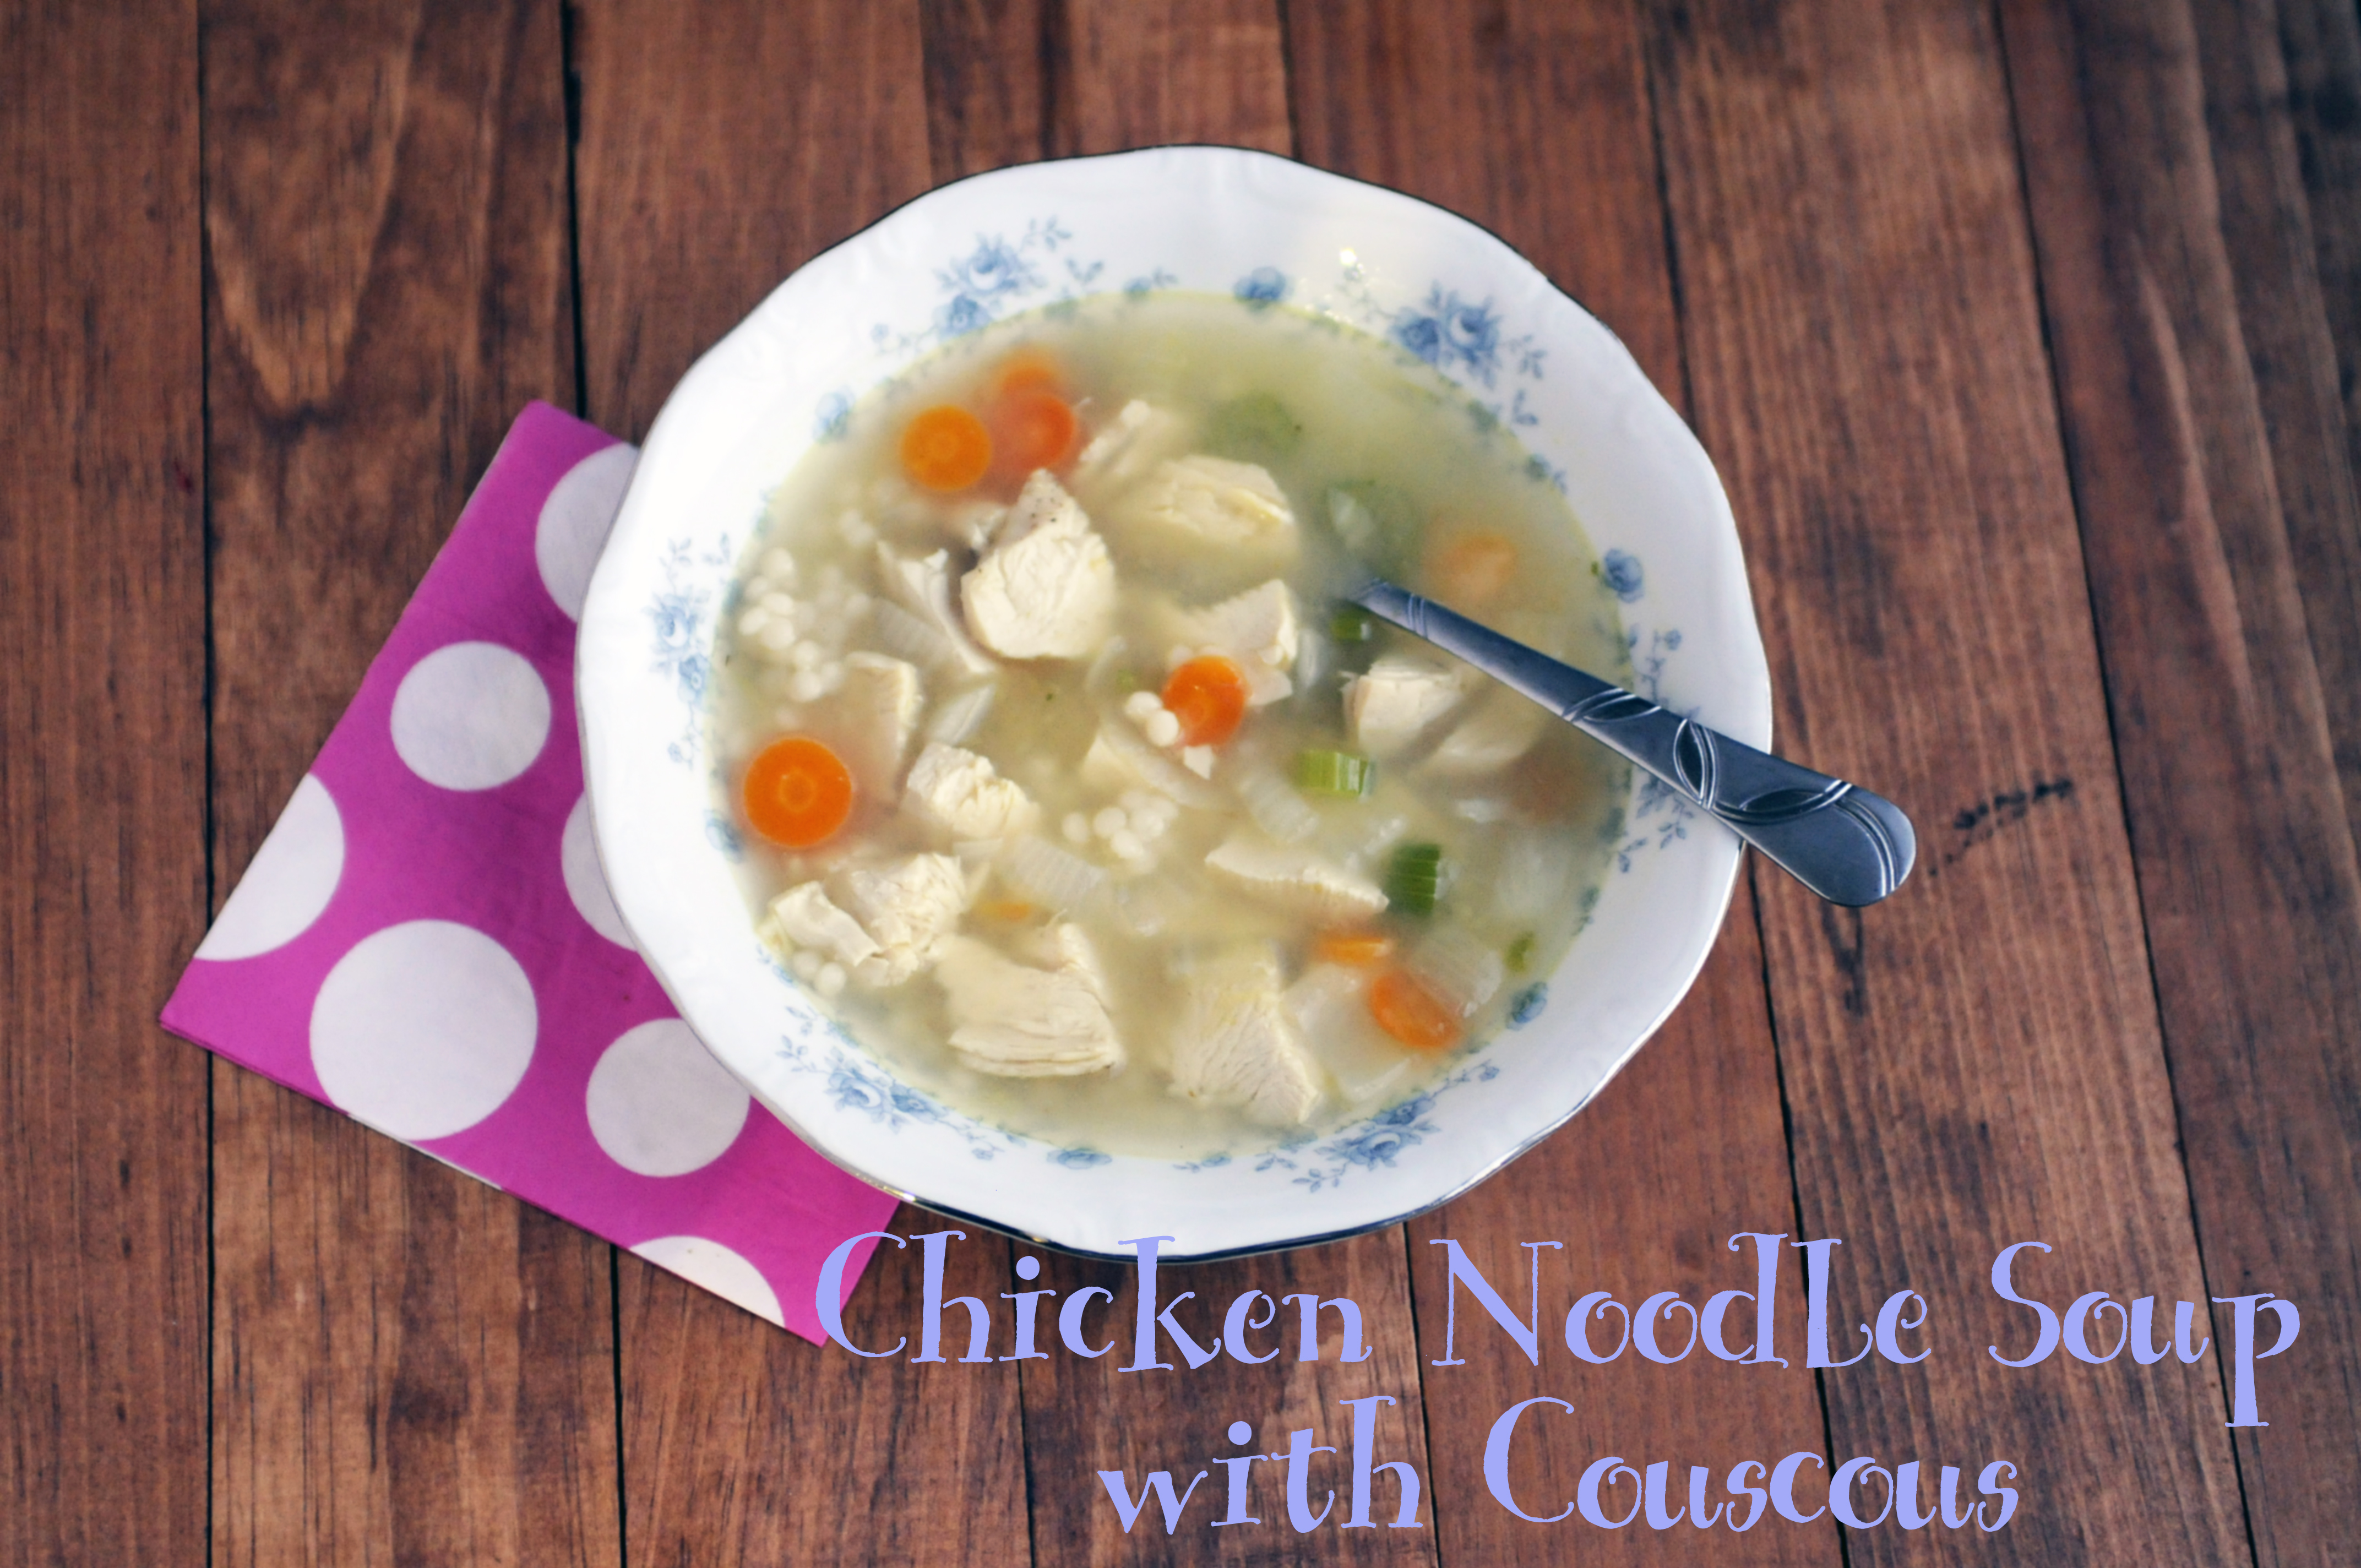 Chicken Noodle Soup with Couscous